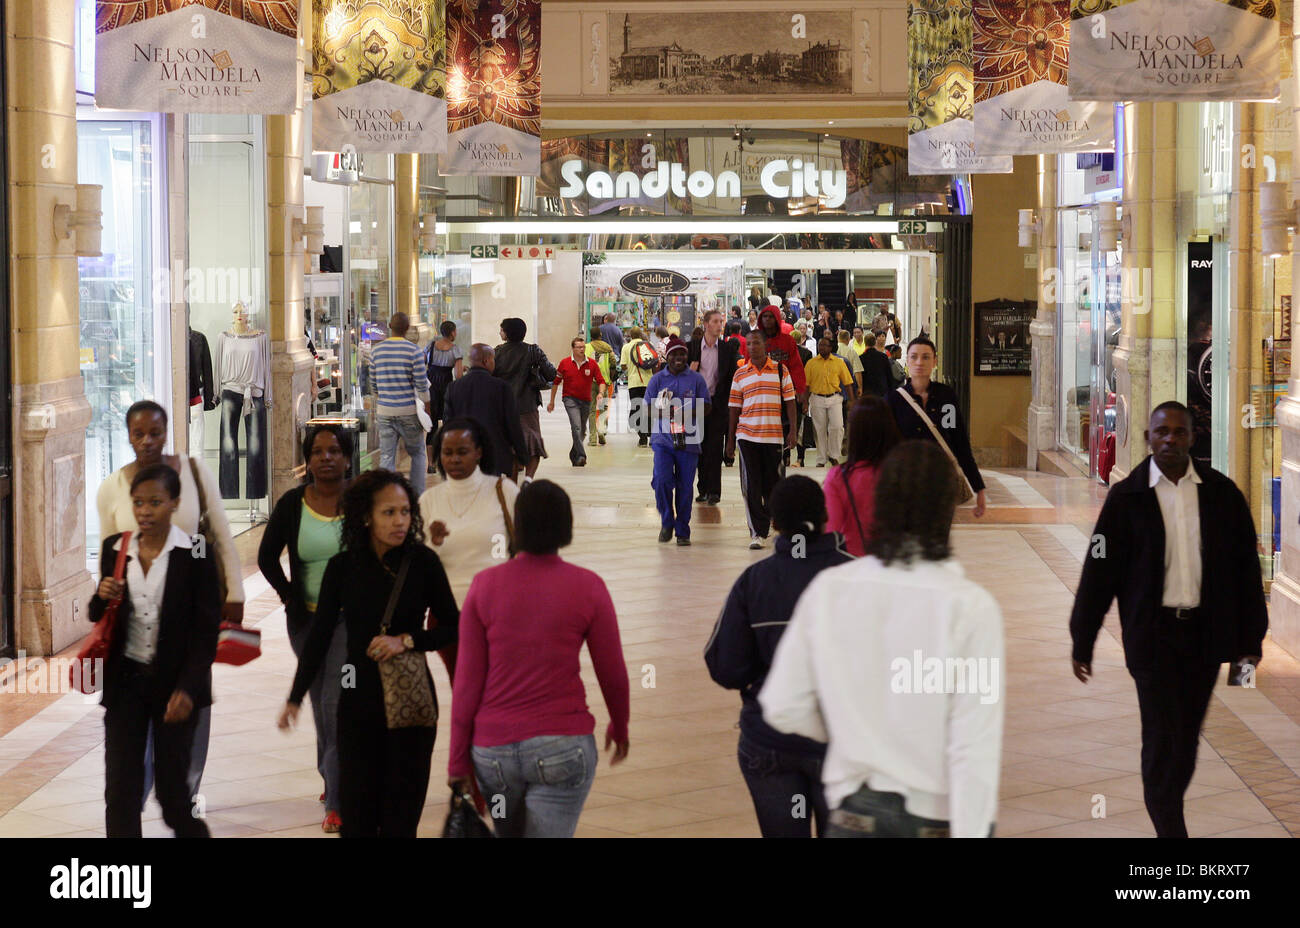 Sandton City, luxury Hotel- and Shopping complex in Sandton, suburb of Johannesburg, South Africa - Stock Image